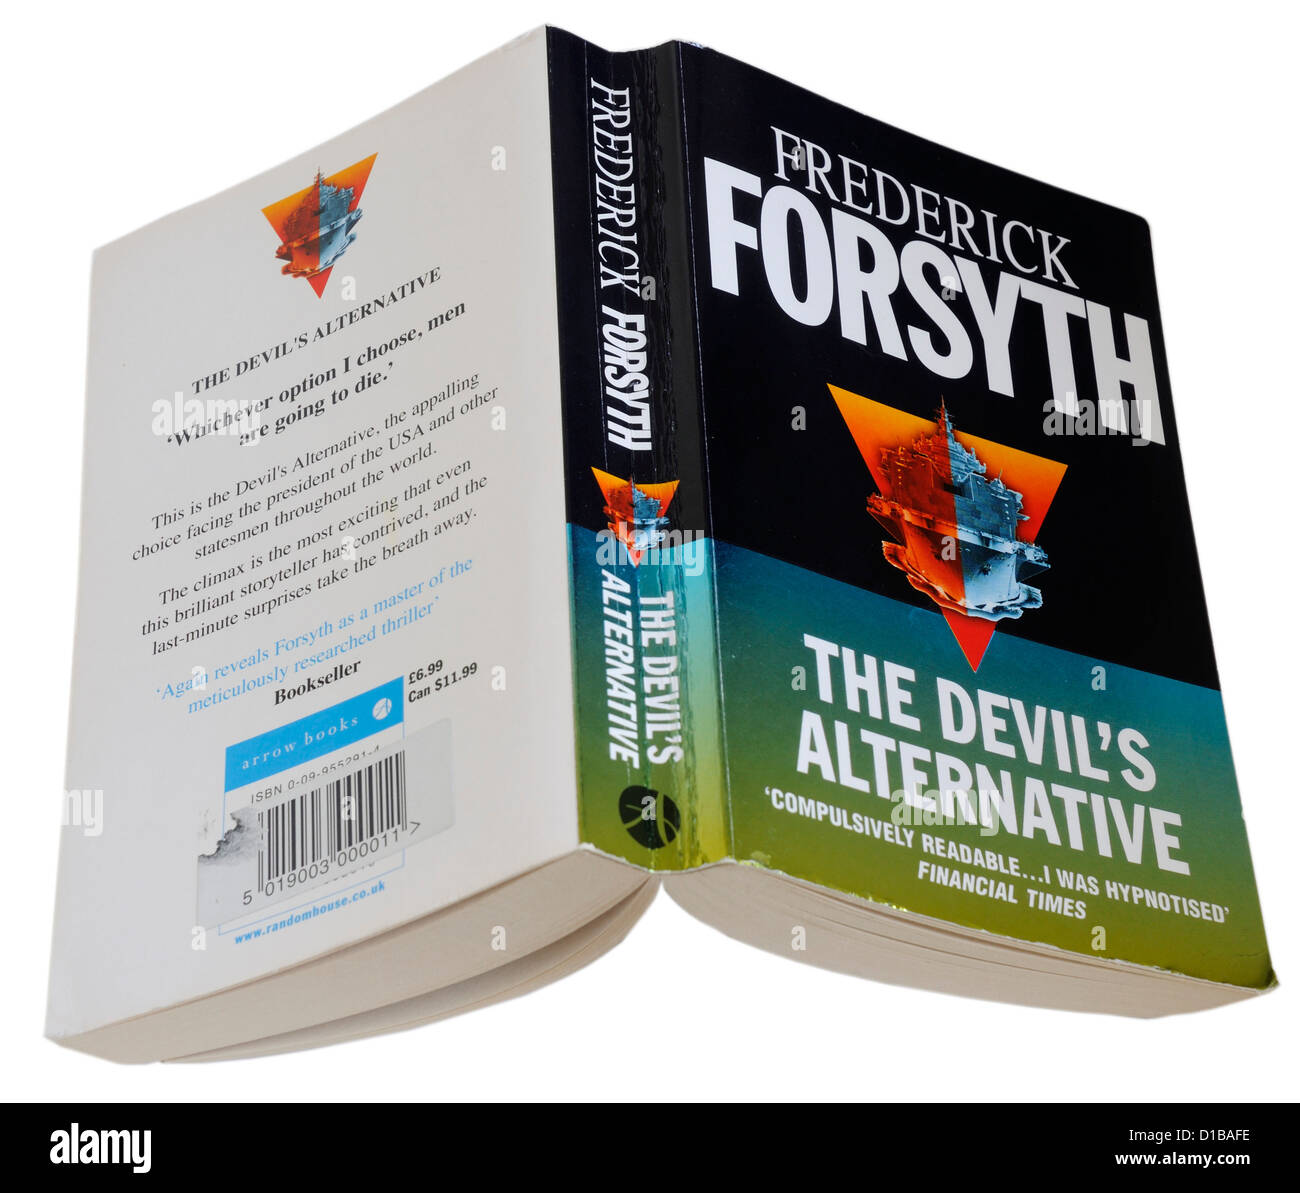 Les Diables Alternative par Frederick Forsyth Photo Stock